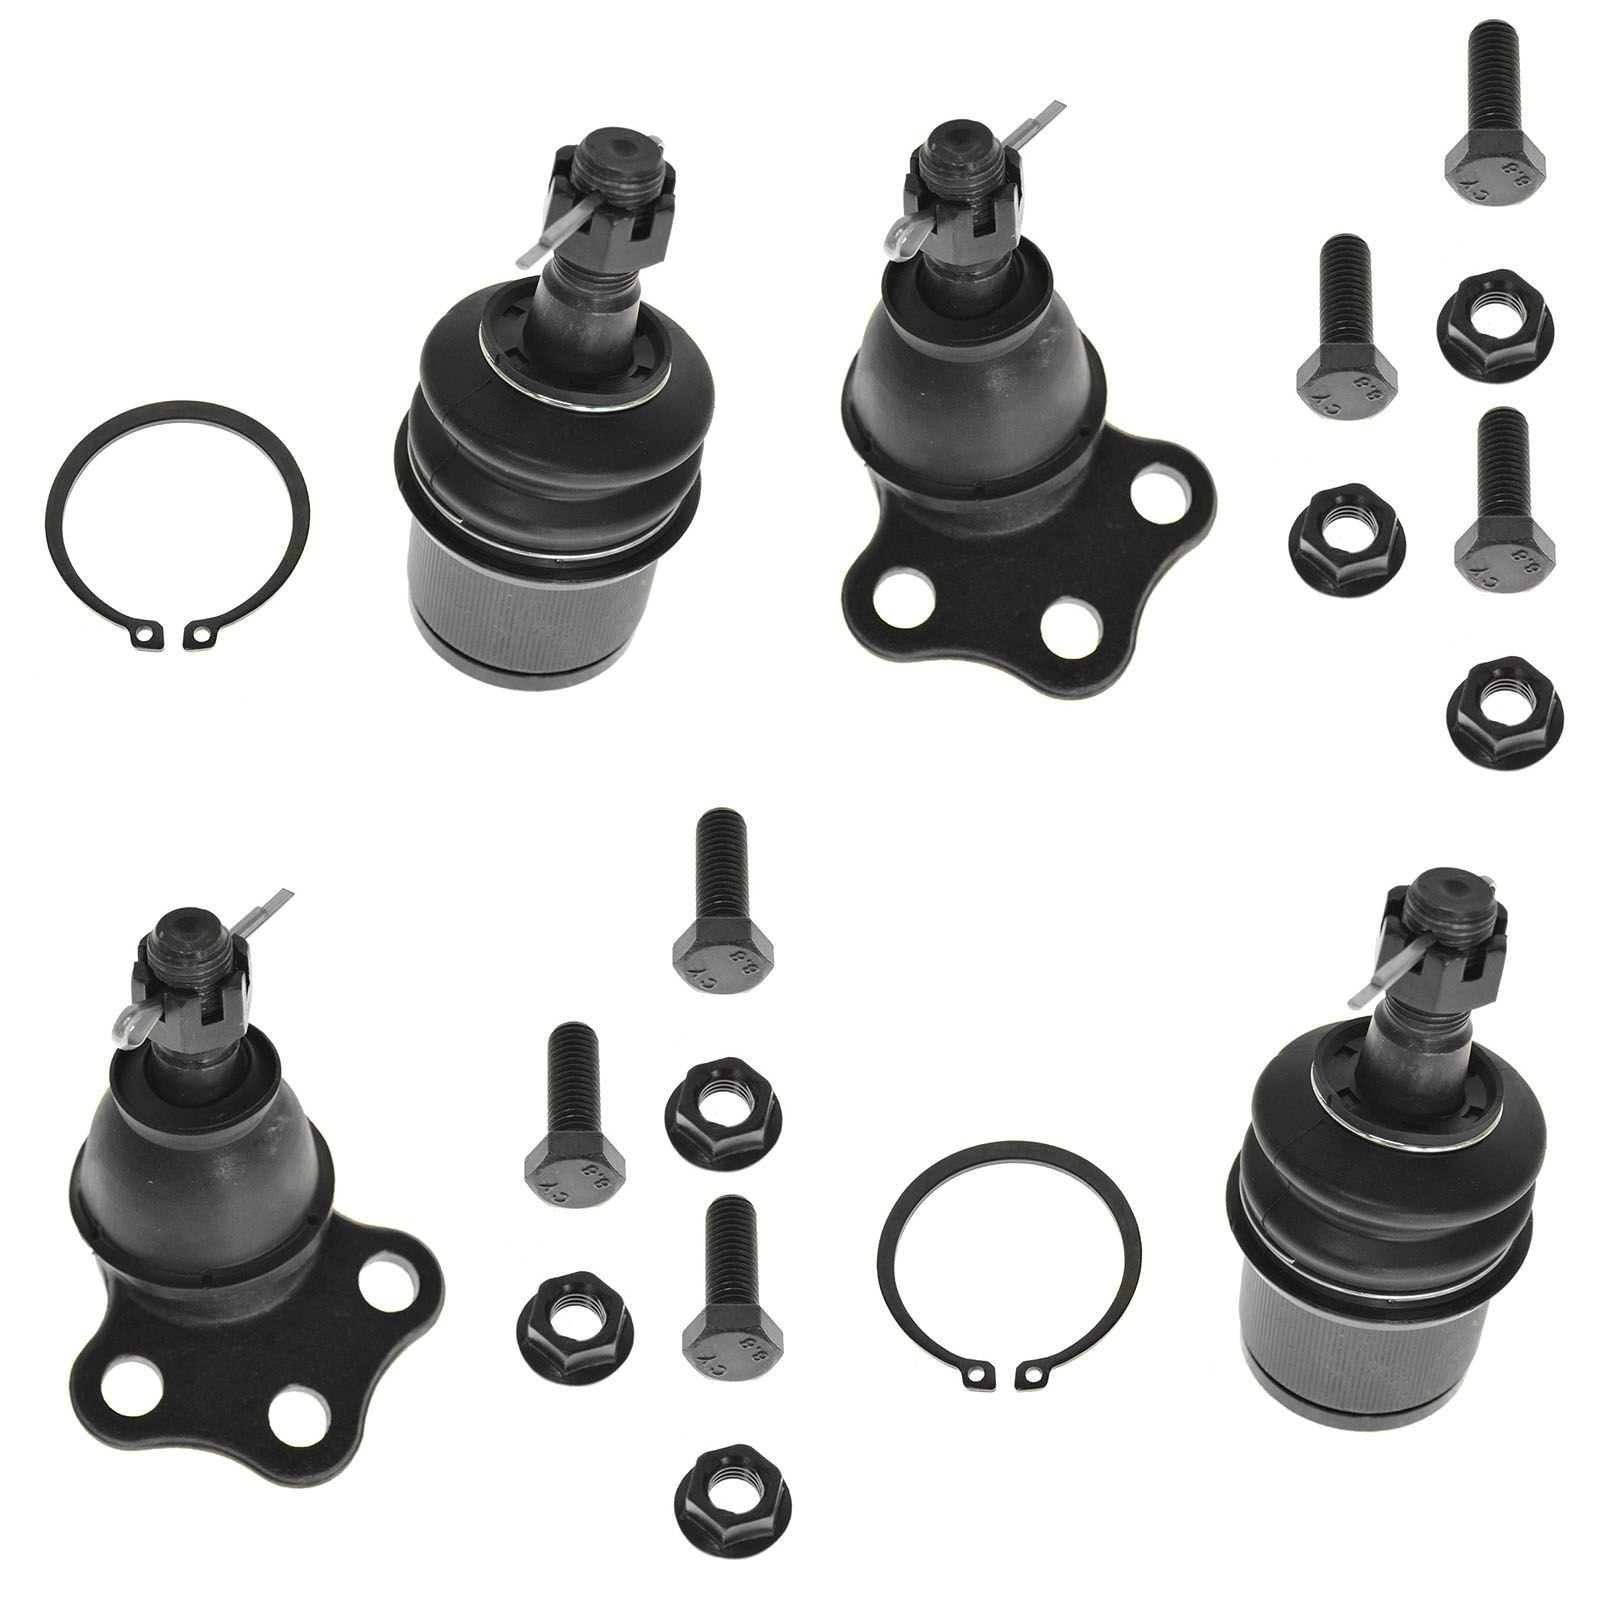 4 2006-2010 Yamaha Wolverine 450 Upper /& Lower Right Left Sides Ball Joint Set